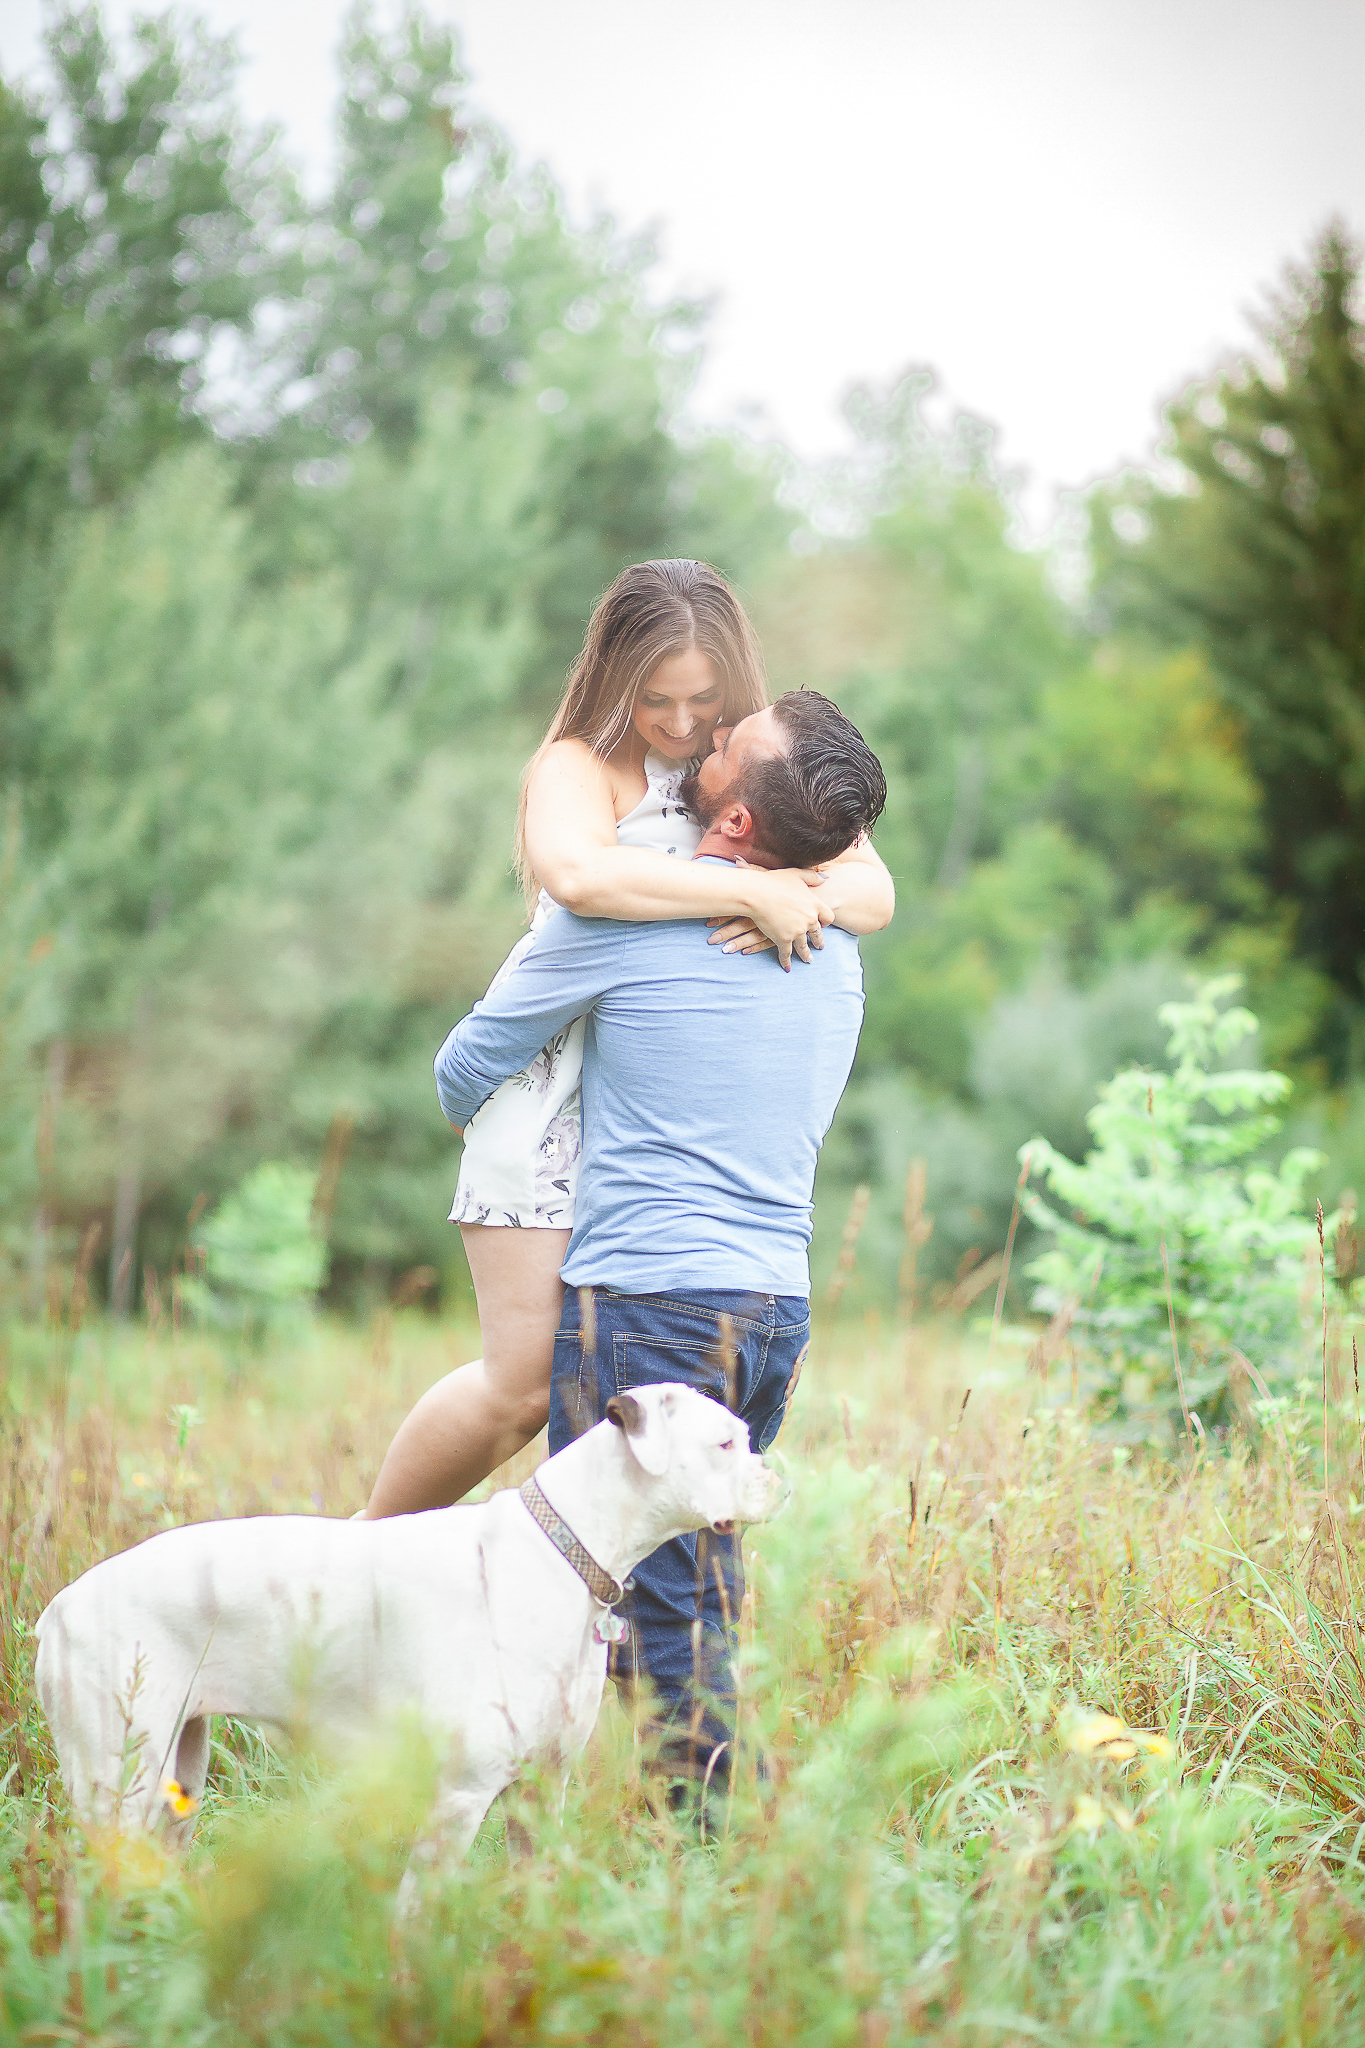 Engagement Sessions- Barrie Wedding Photography  Engagement Photo Session Pose Ideas  Barrie Wedding Photography  Muskoka Wedding Photography  Best Wedding Photographers  Wedding Bells  Outdoor Engagement Session  Engagement Ideas and Poses  Dog Engagement Photos